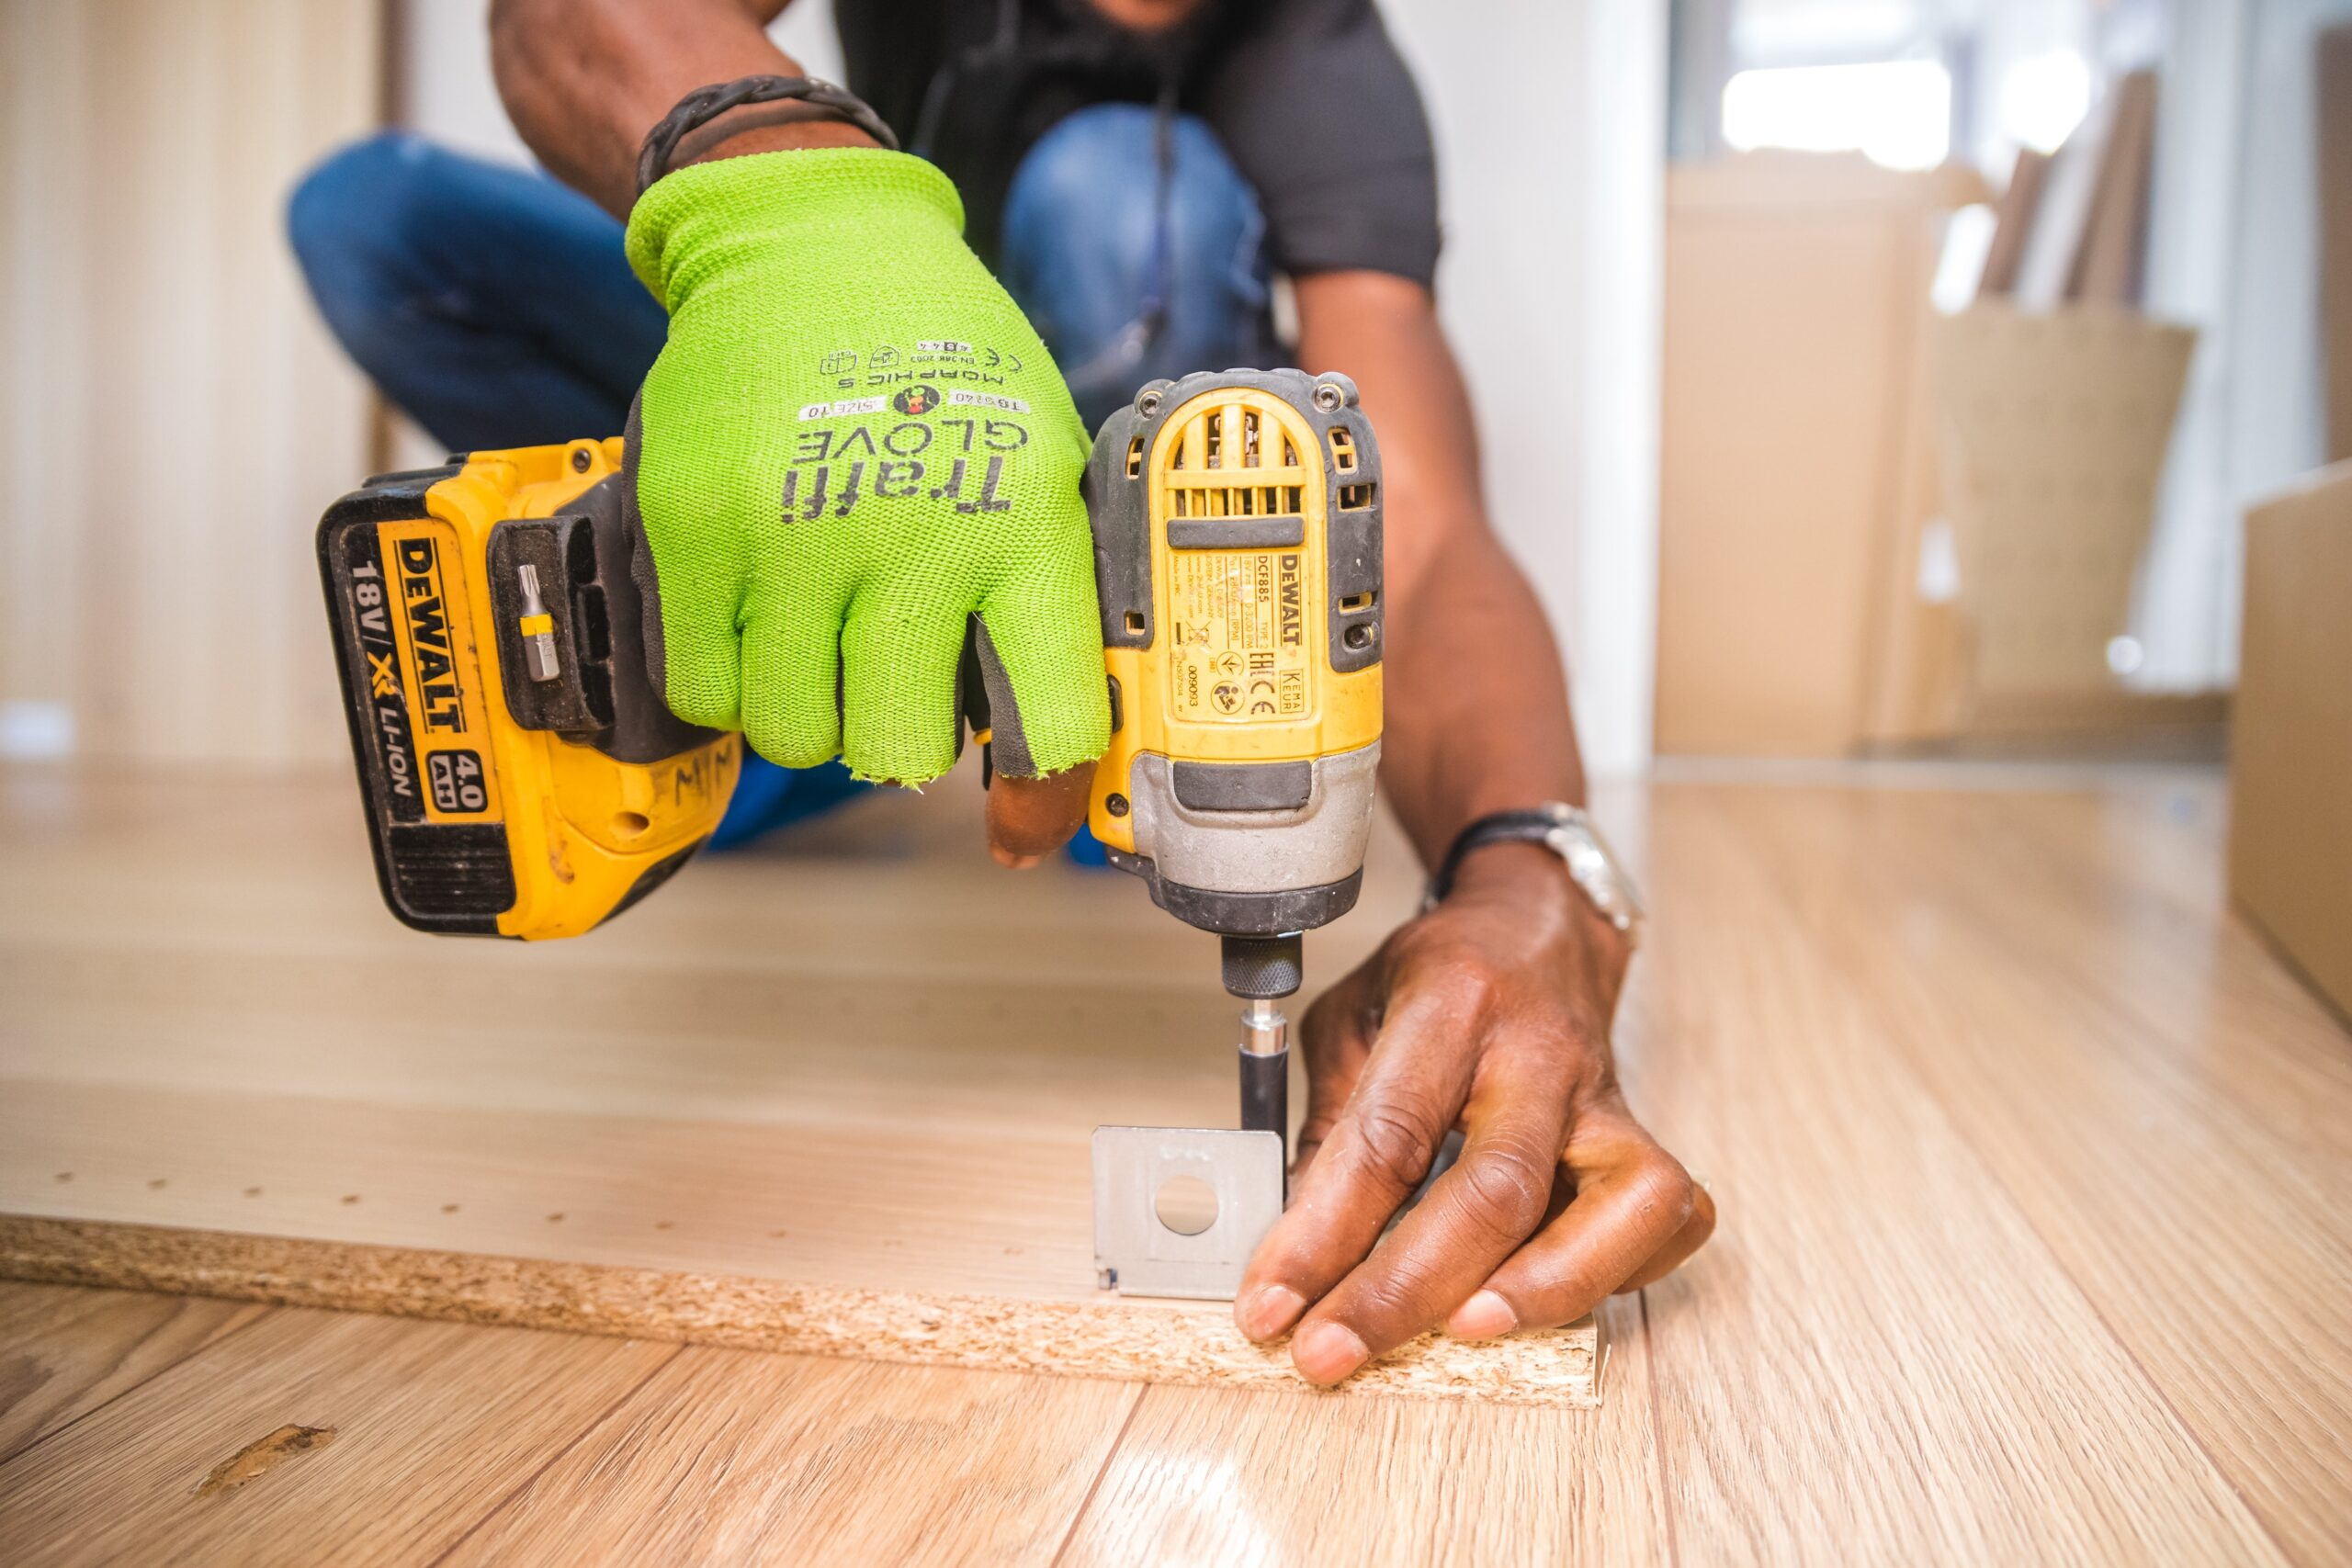 http://caymanitemaintenance.com/wp-content/uploads/2020/07/person-using-dewalt-cordless-impact-driver-on-brown-board-1249611-scaled.jpg